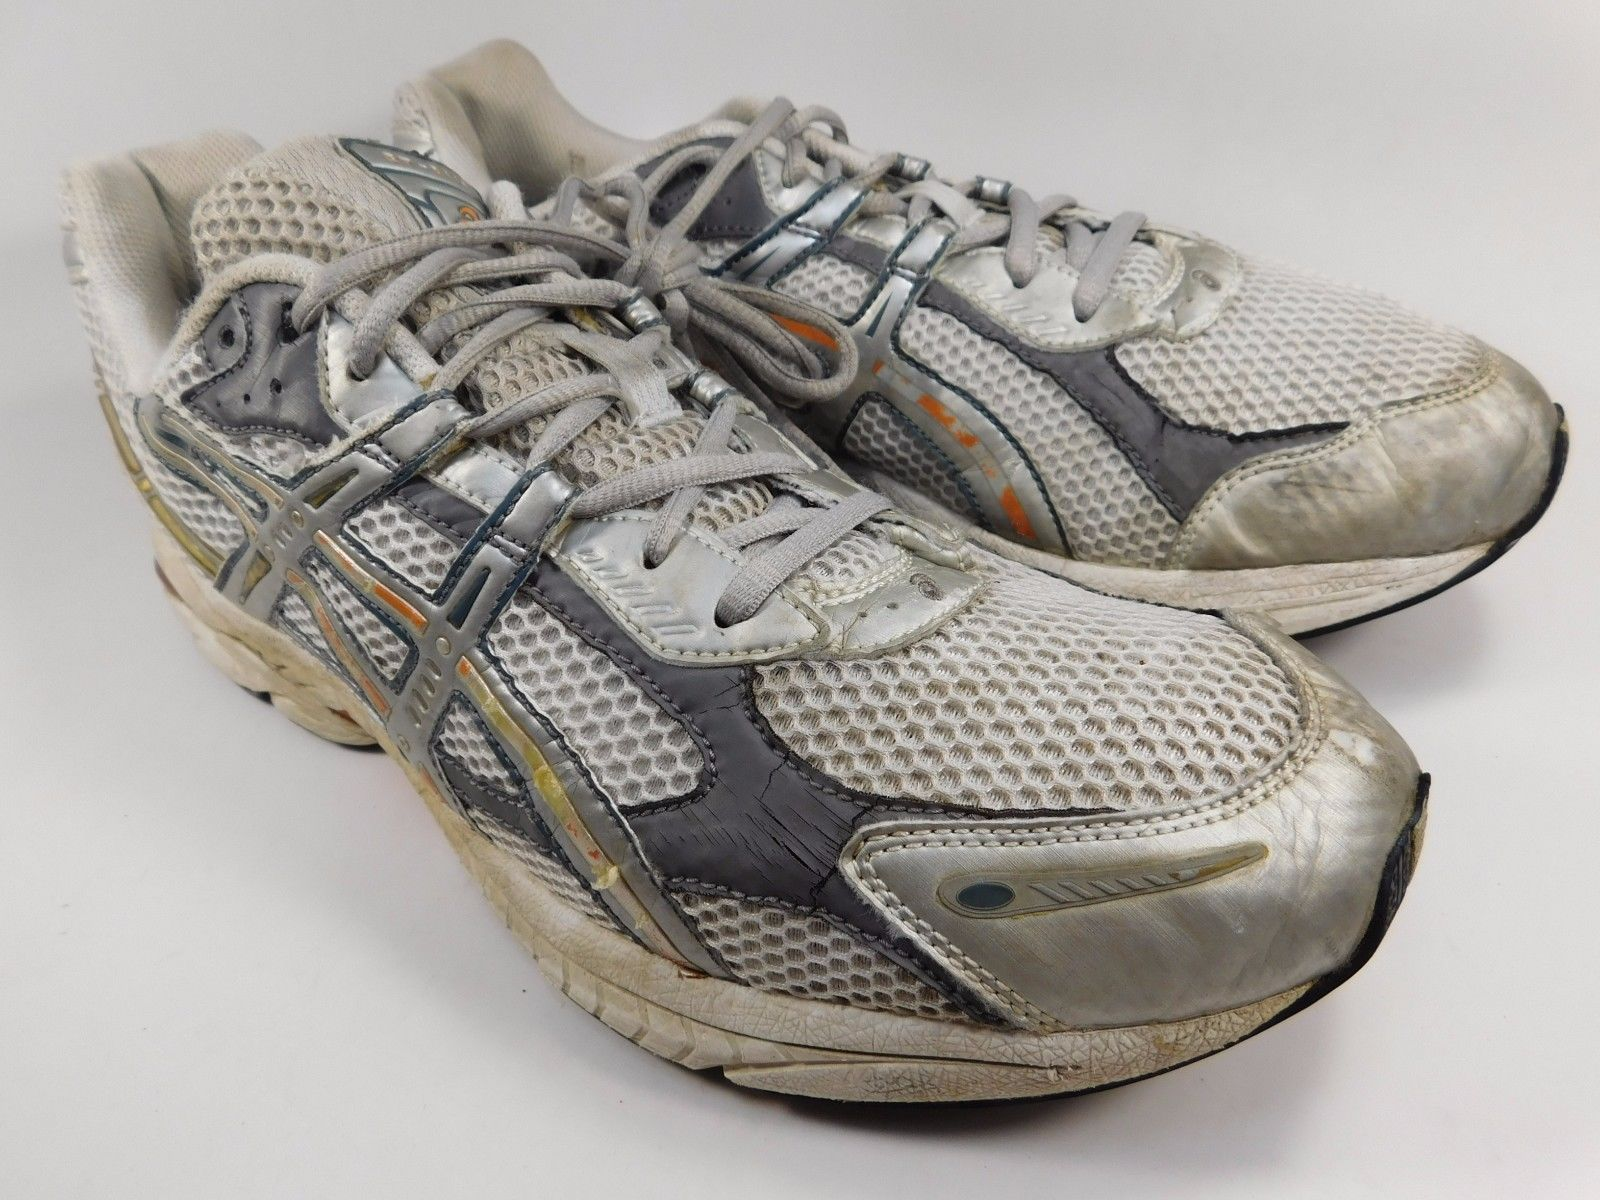 Asics GT 2110 Men s Running Shoes Size US 14 and 50 similar items bdaa9781a1